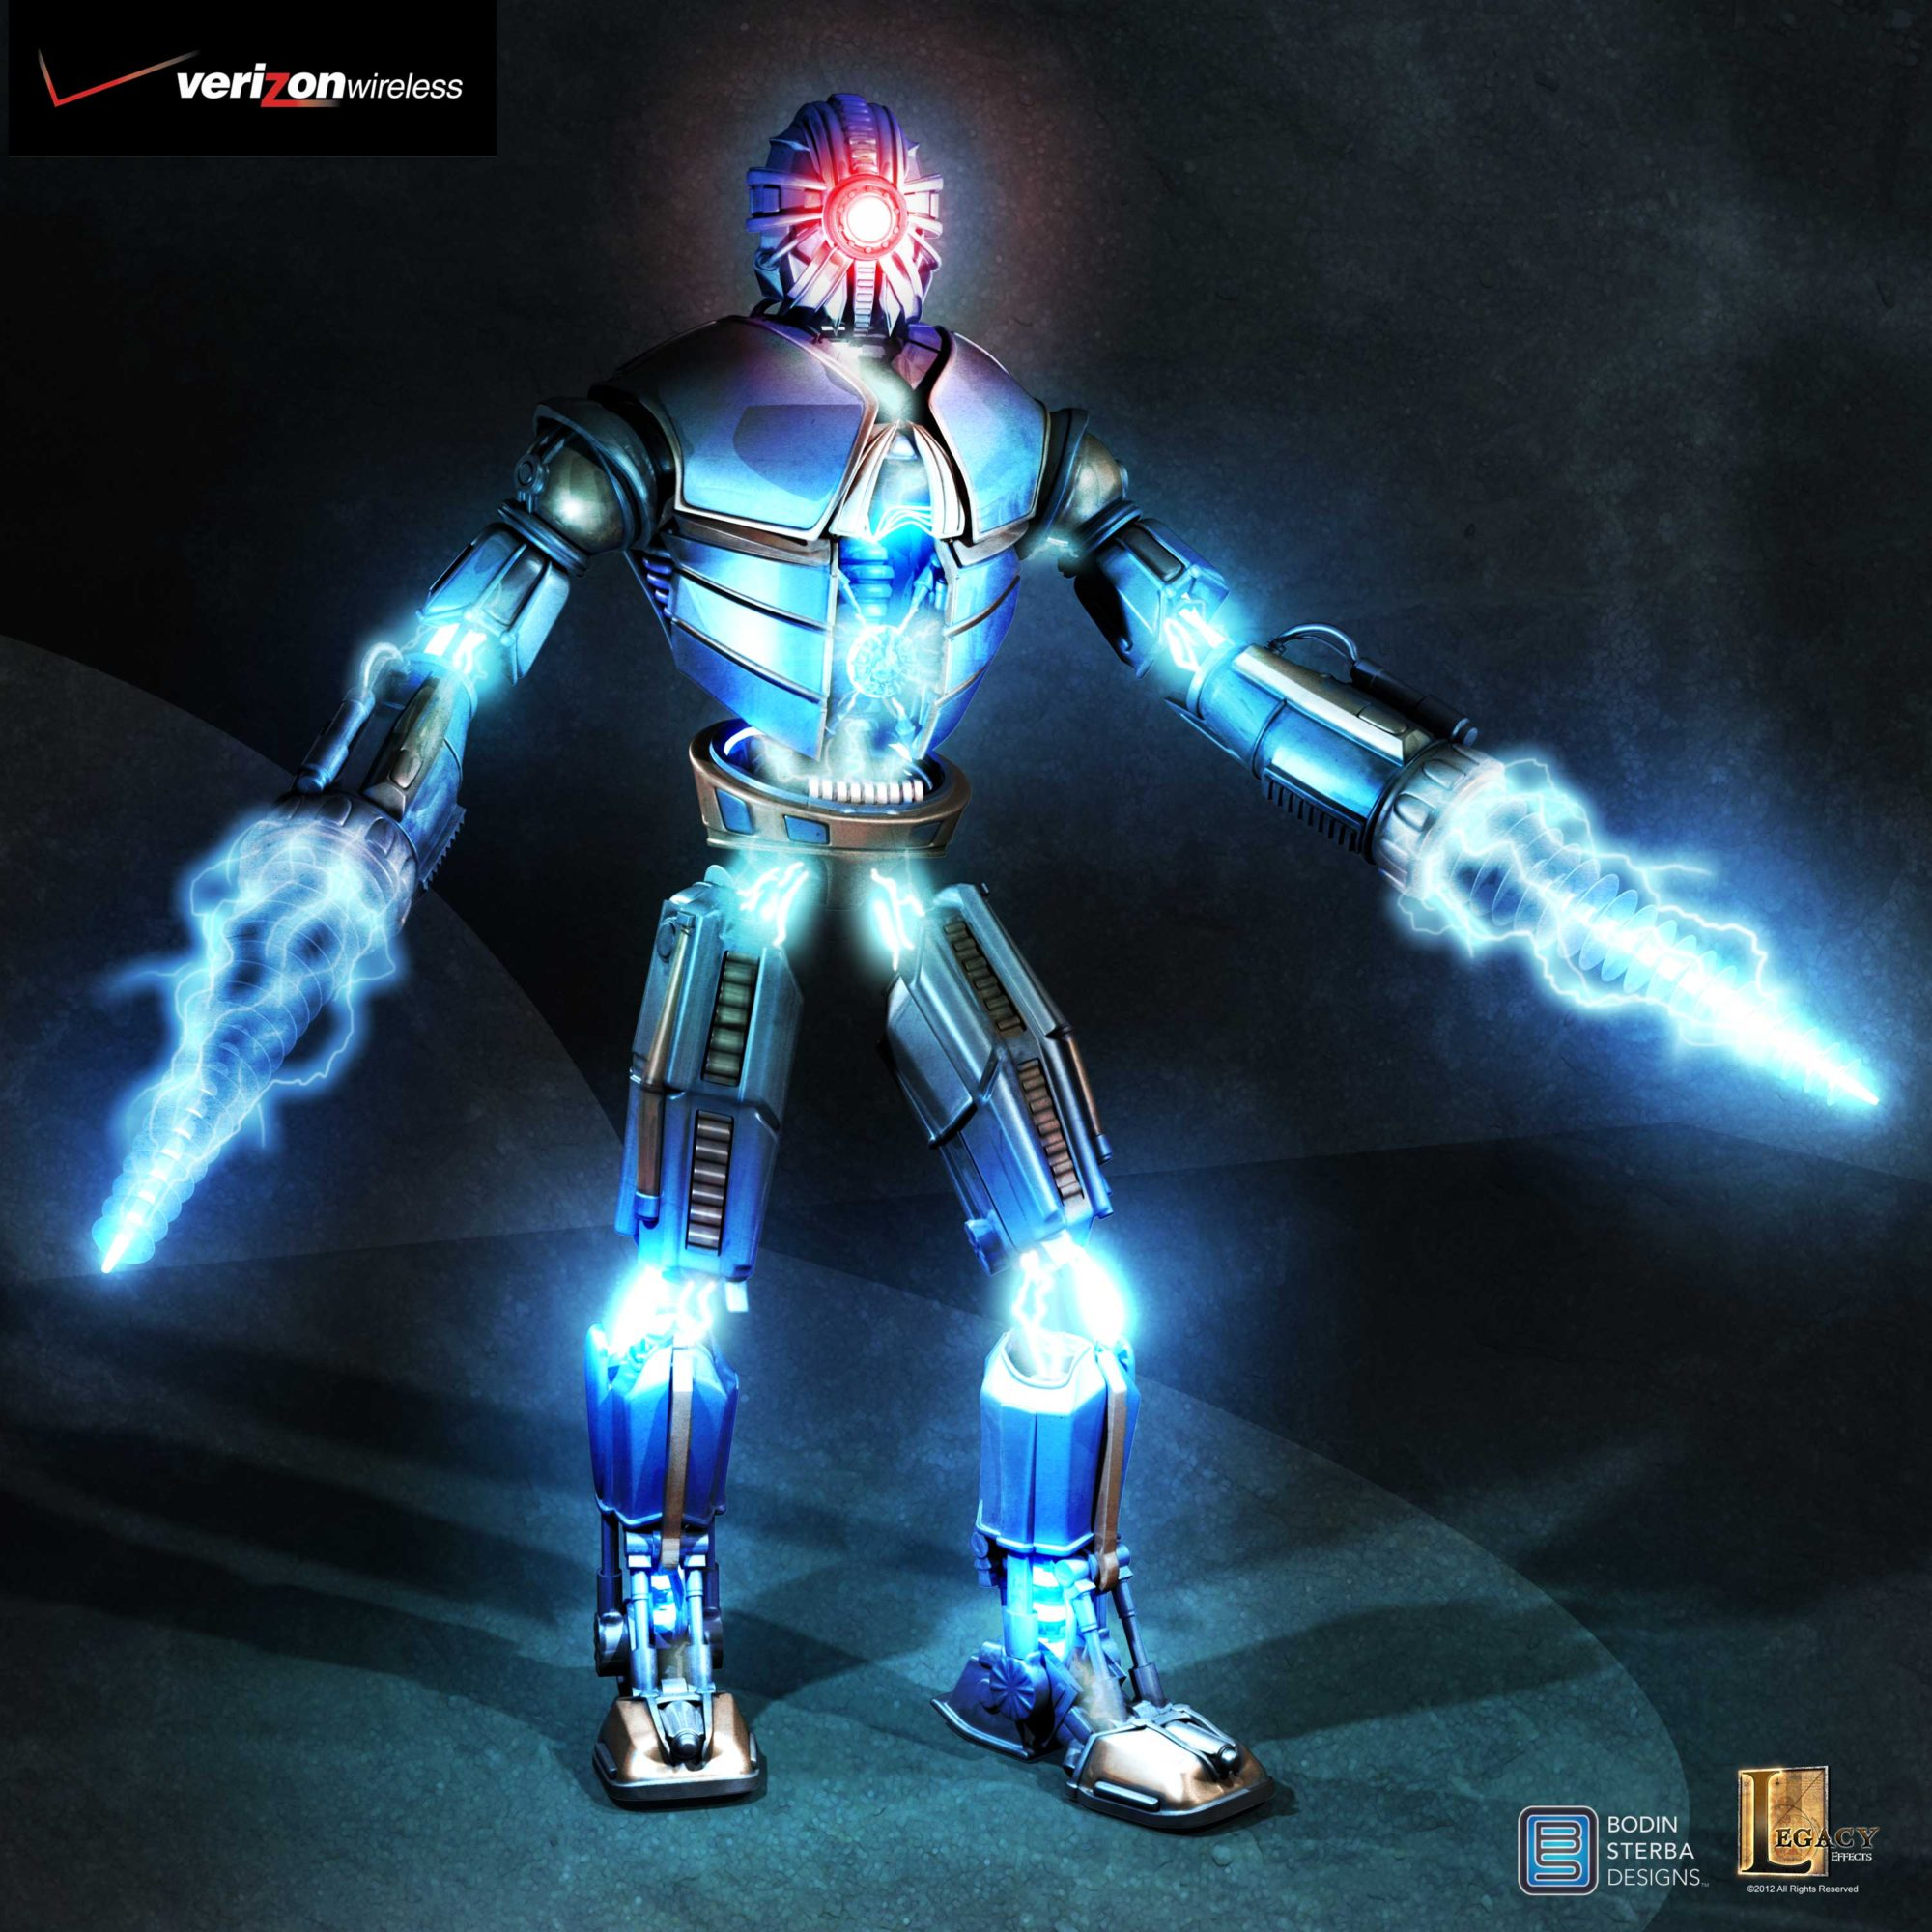 Verizon 4GE robot concept v04.2 designed for Legacy Effects.